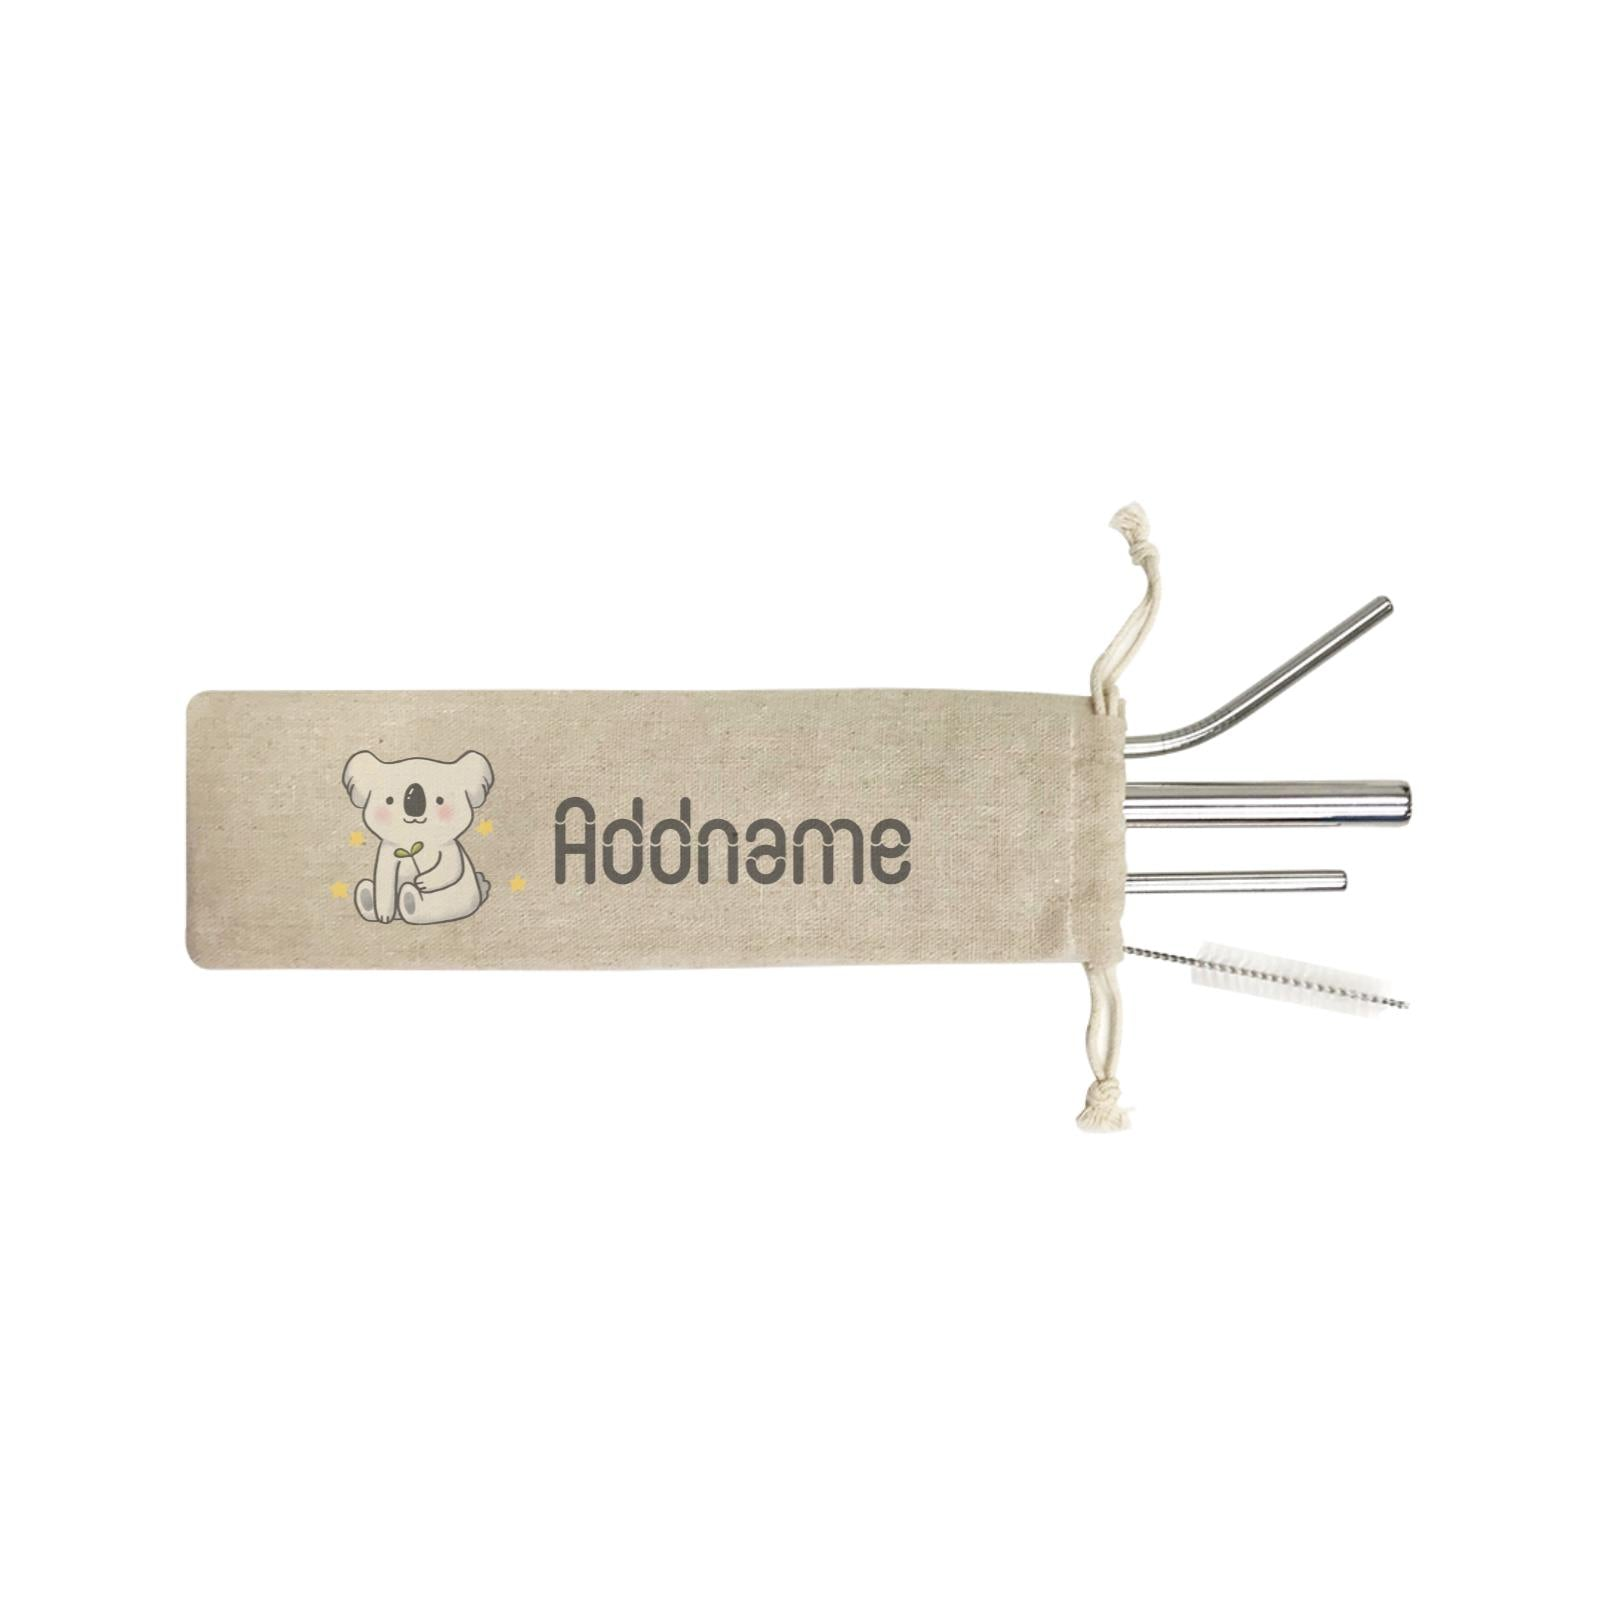 Cute Hand Drawn Style Koala Addname ST SZP 4-In-1 Stainless Steel Straw Set in Satchel